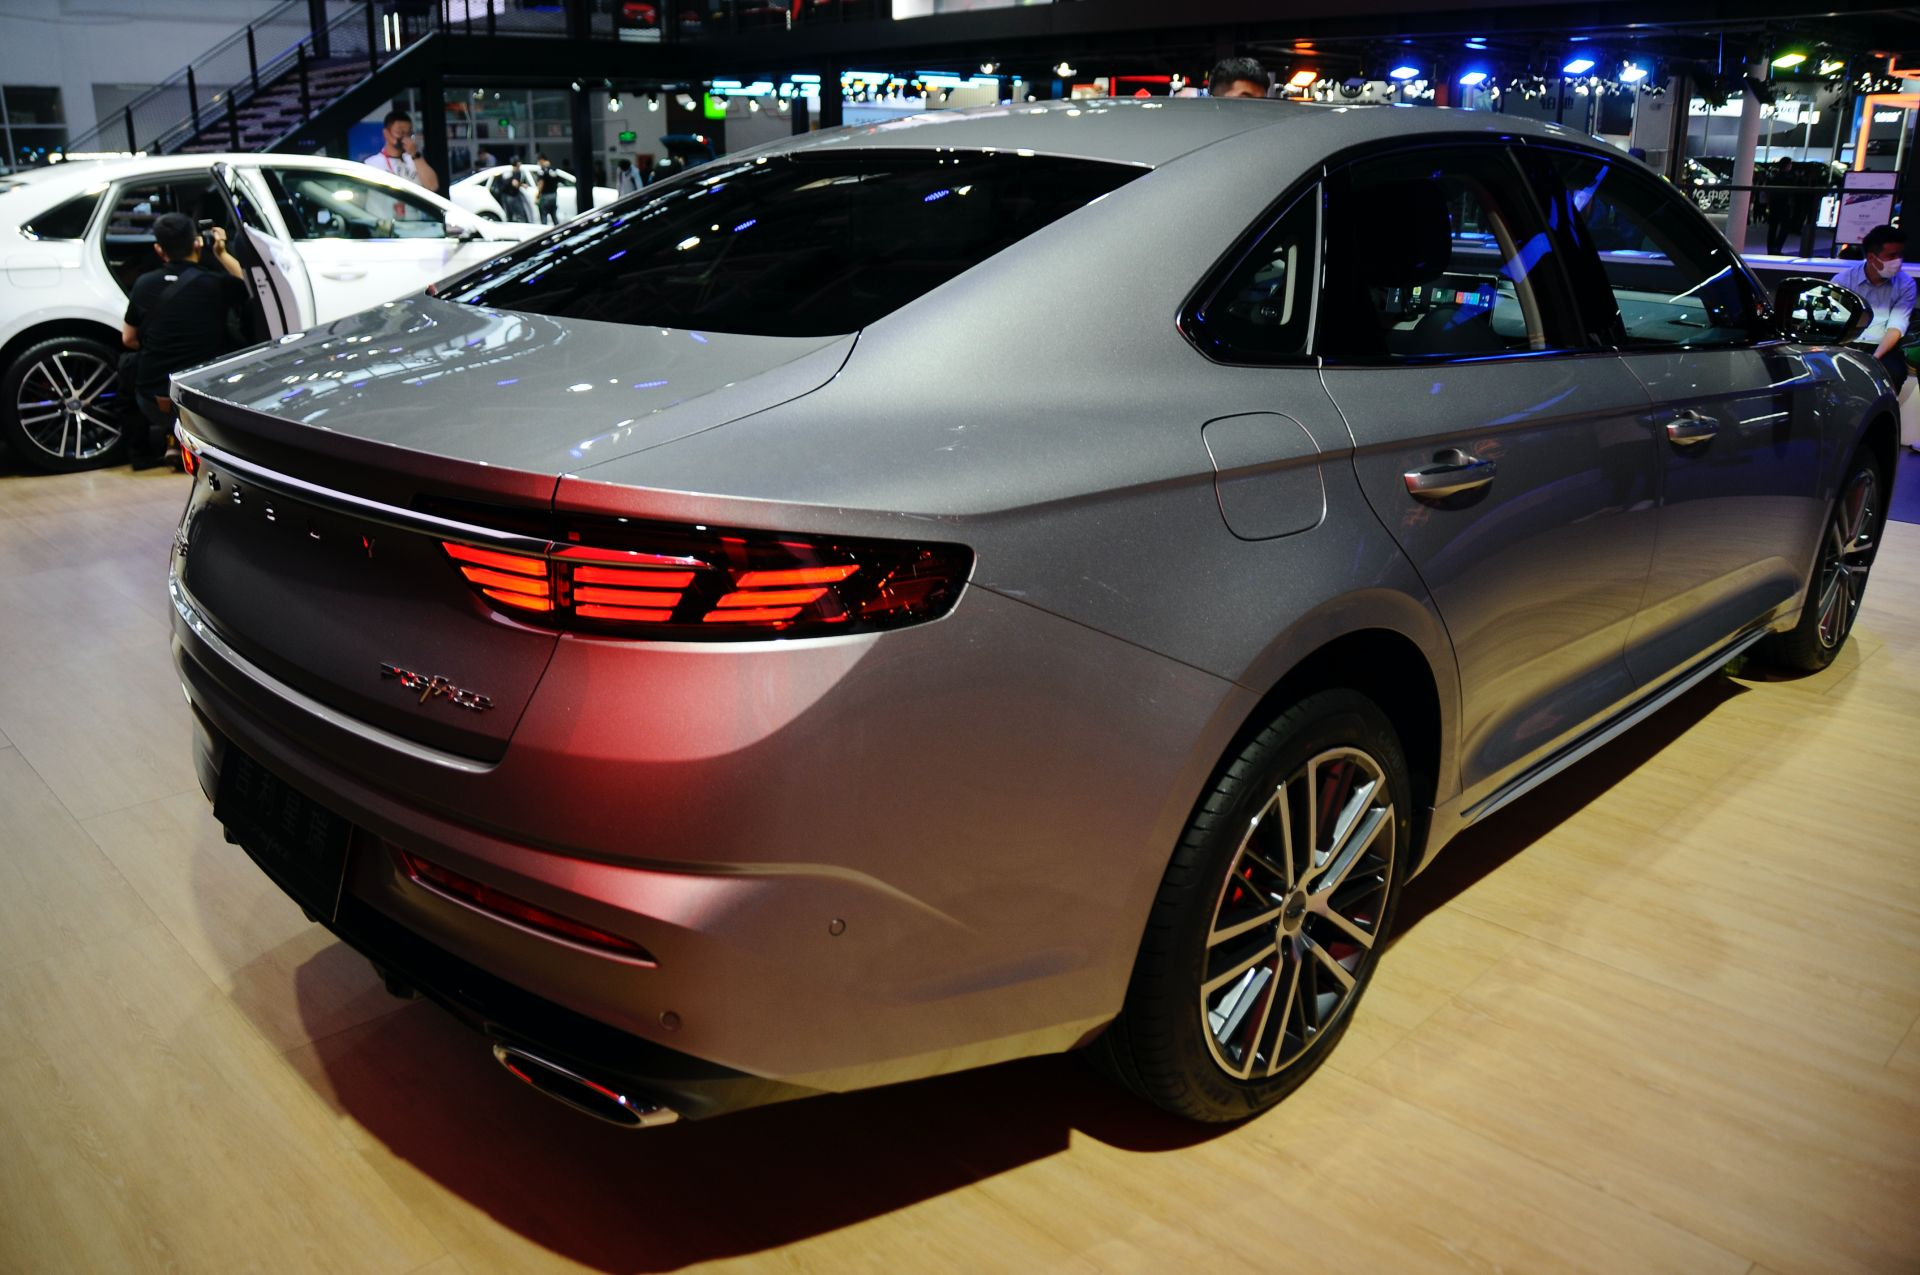 2021-Geely-Preface-aka-Xing-Rui-at-the-2020-Beijing-Auto-Show-6.jpg